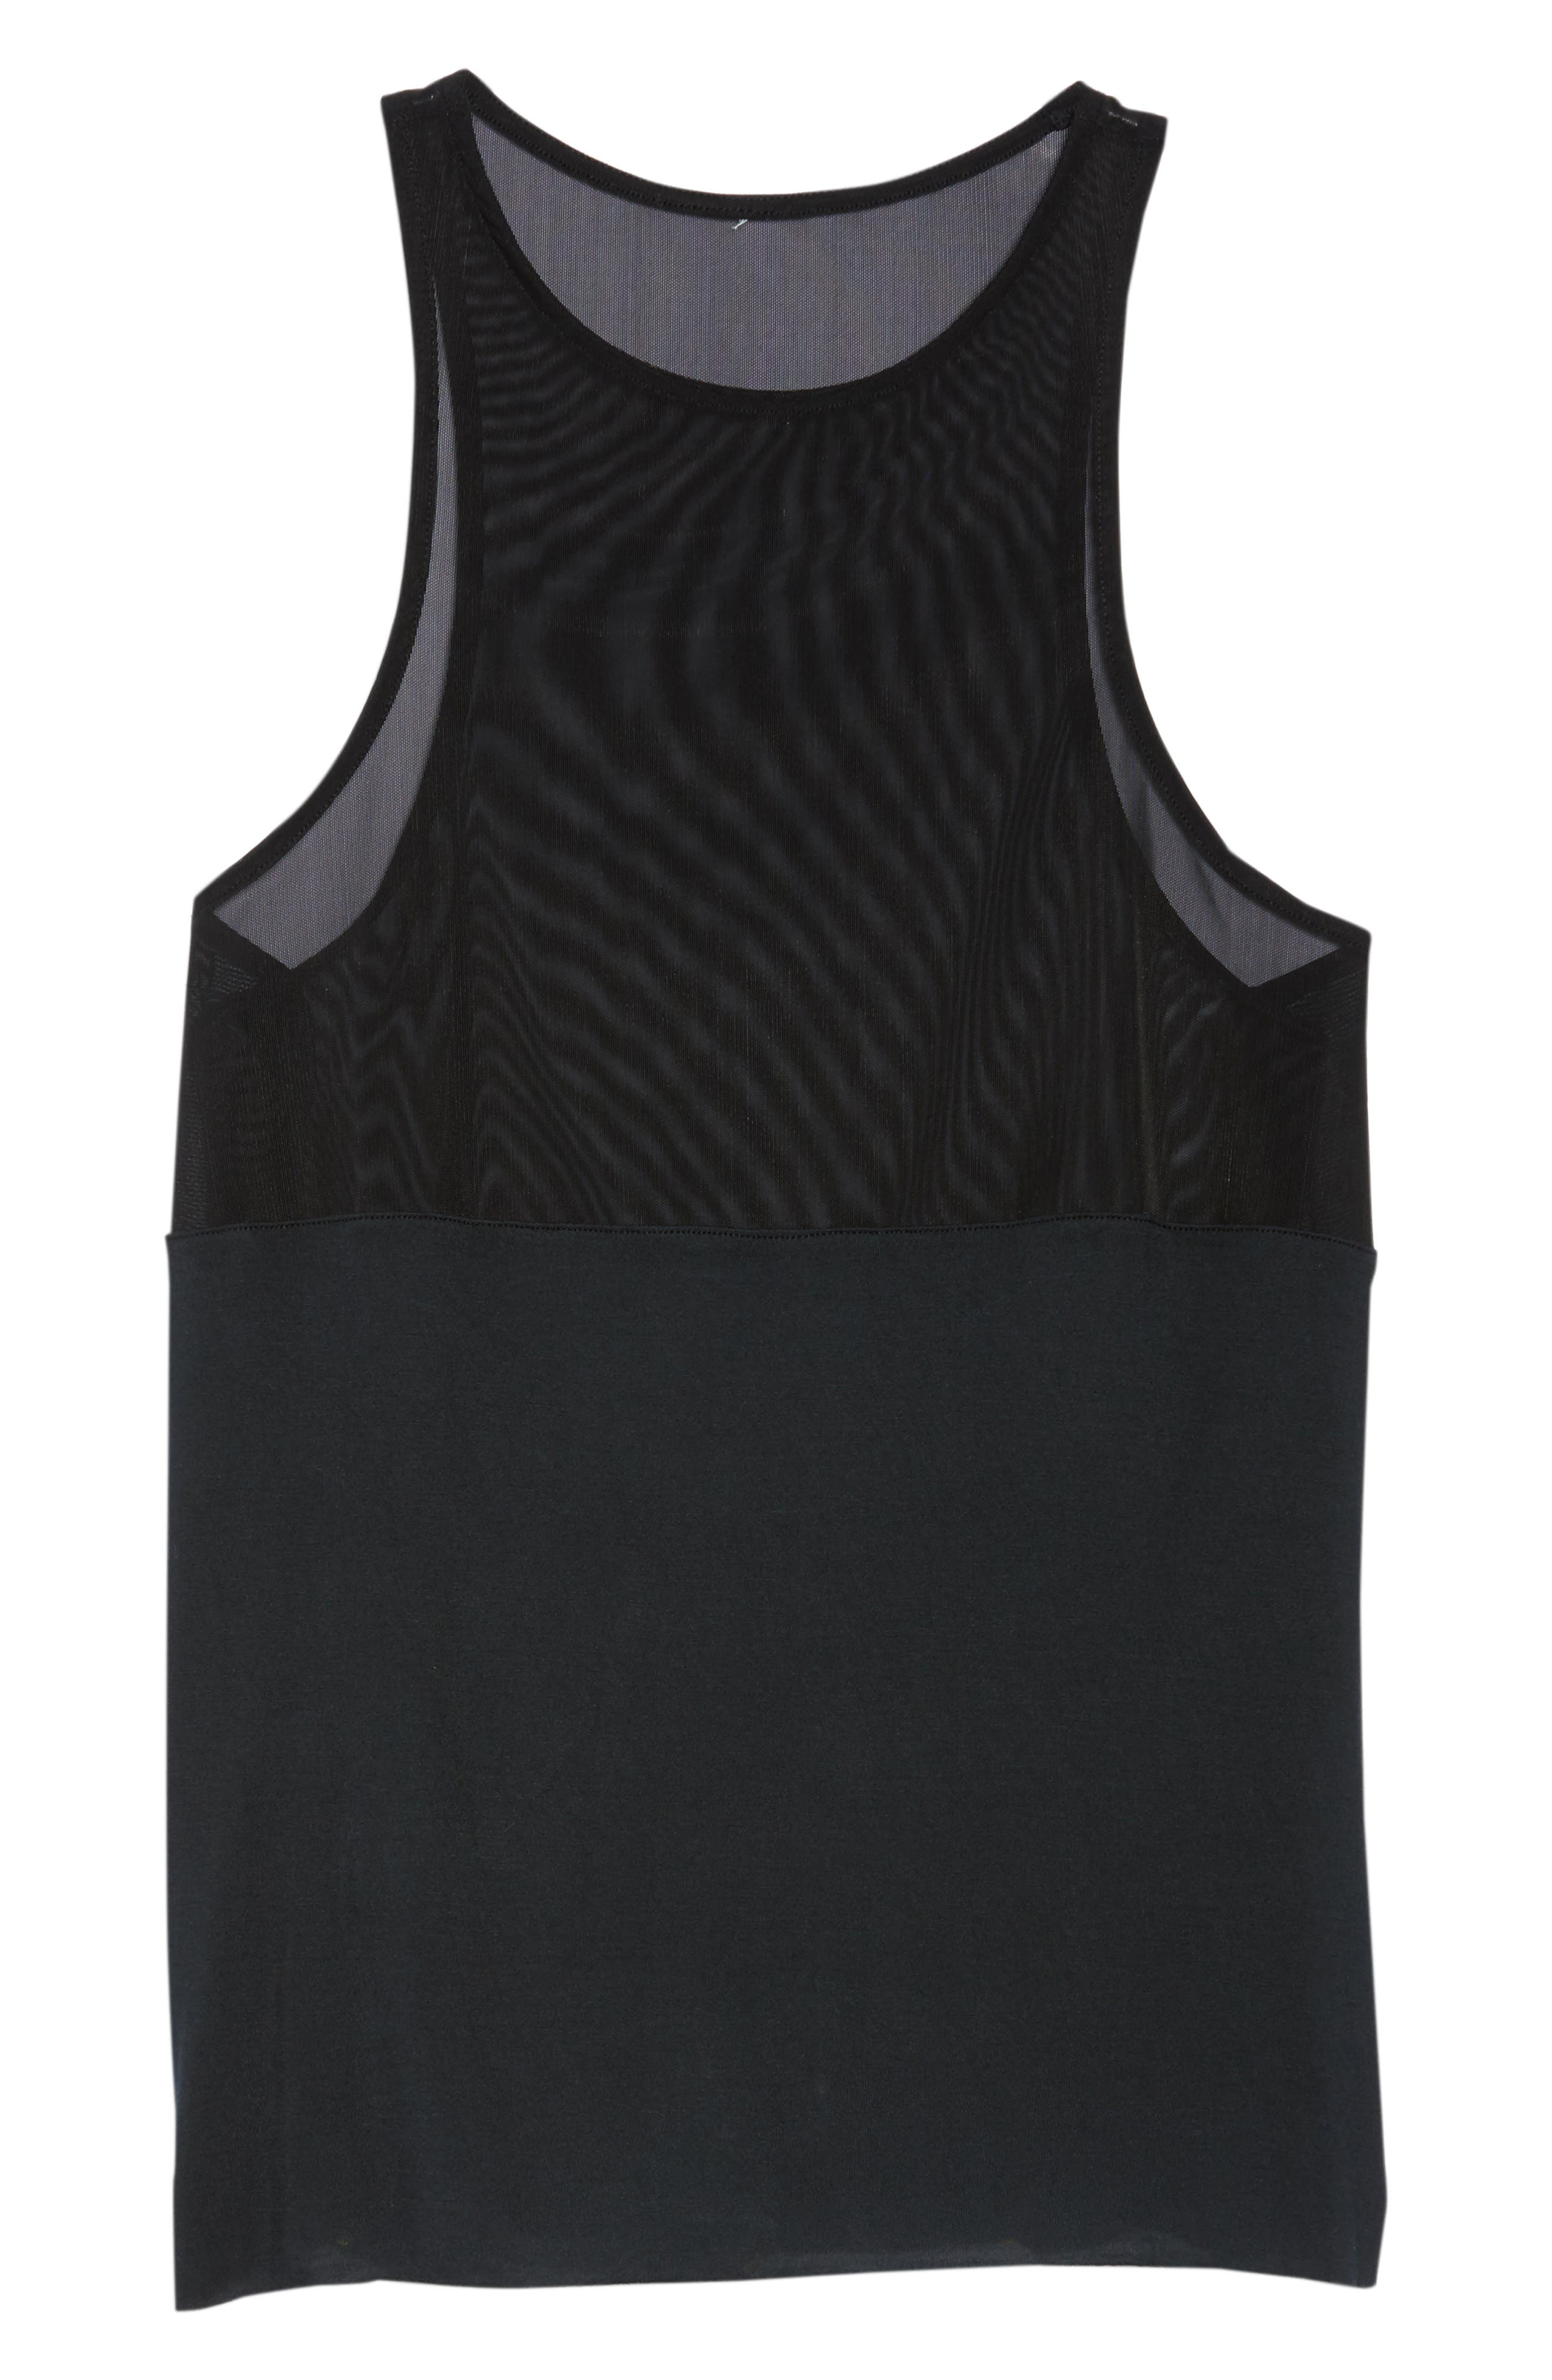 Tide Tank,                             Alternate thumbnail 7, color,                             Black